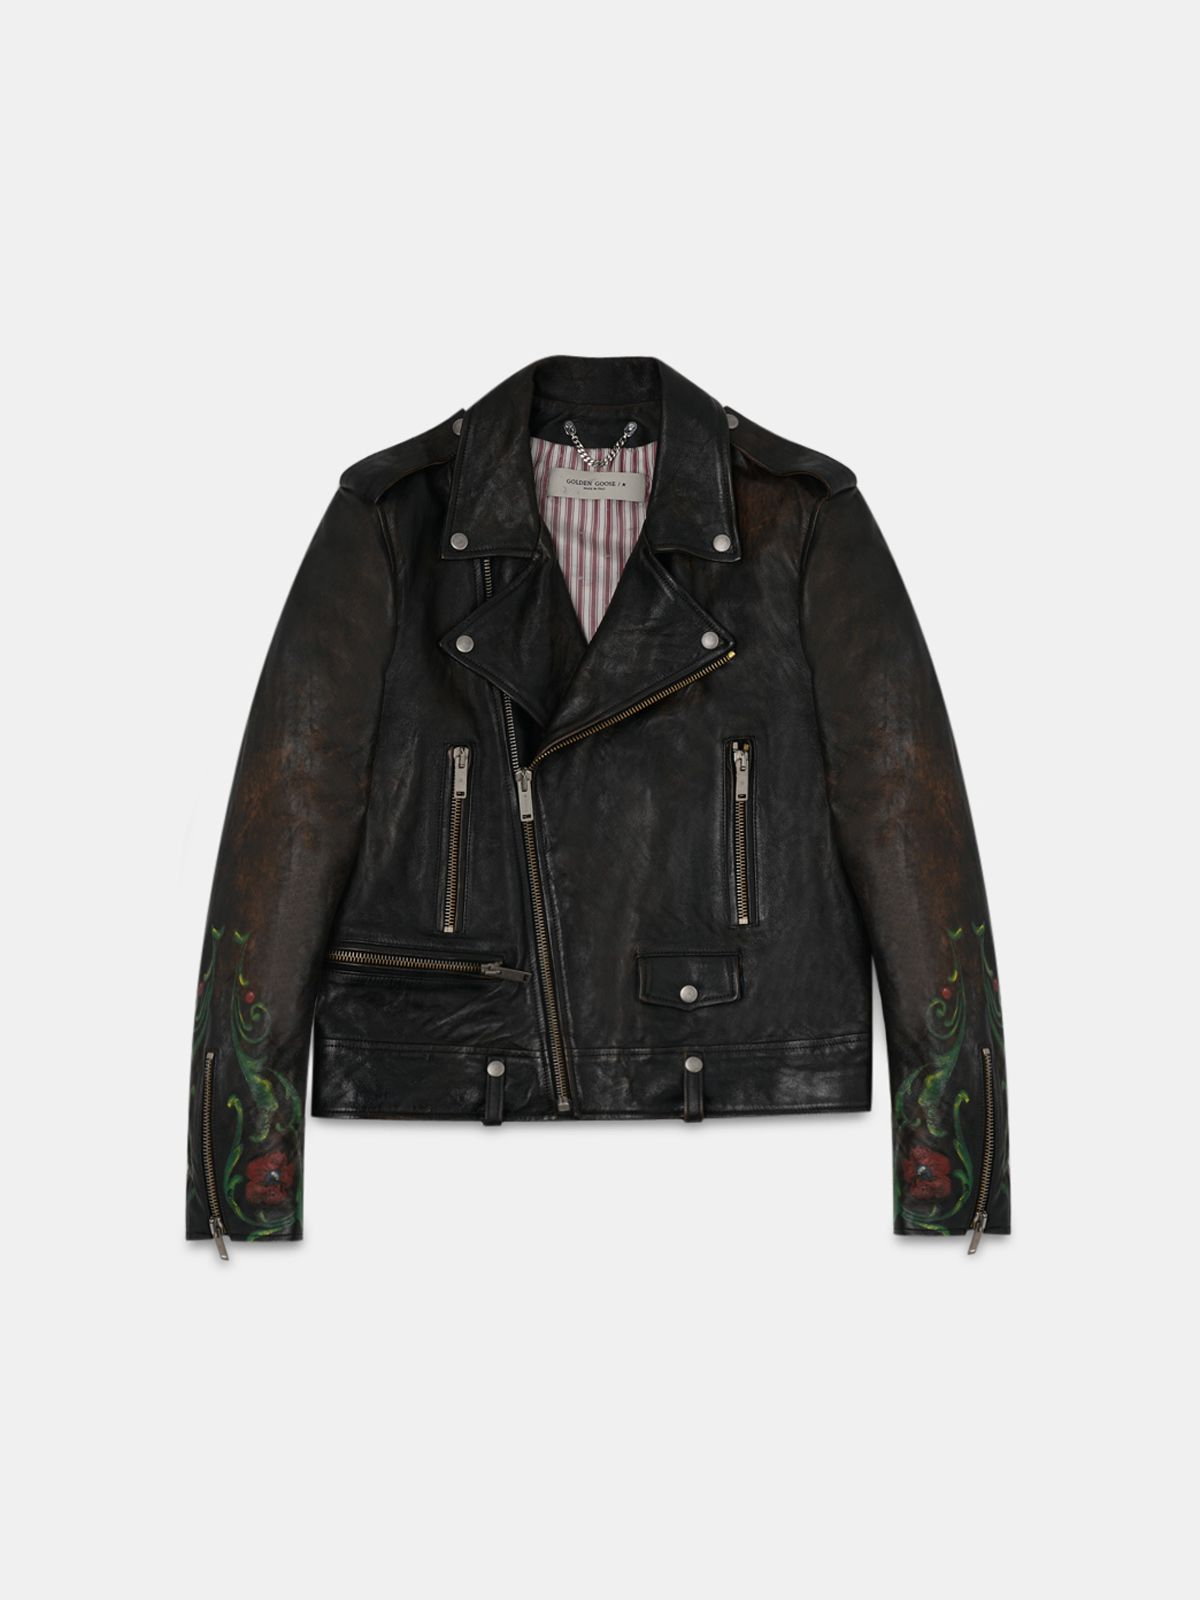 Arden leather biker jacket with hand-painted details